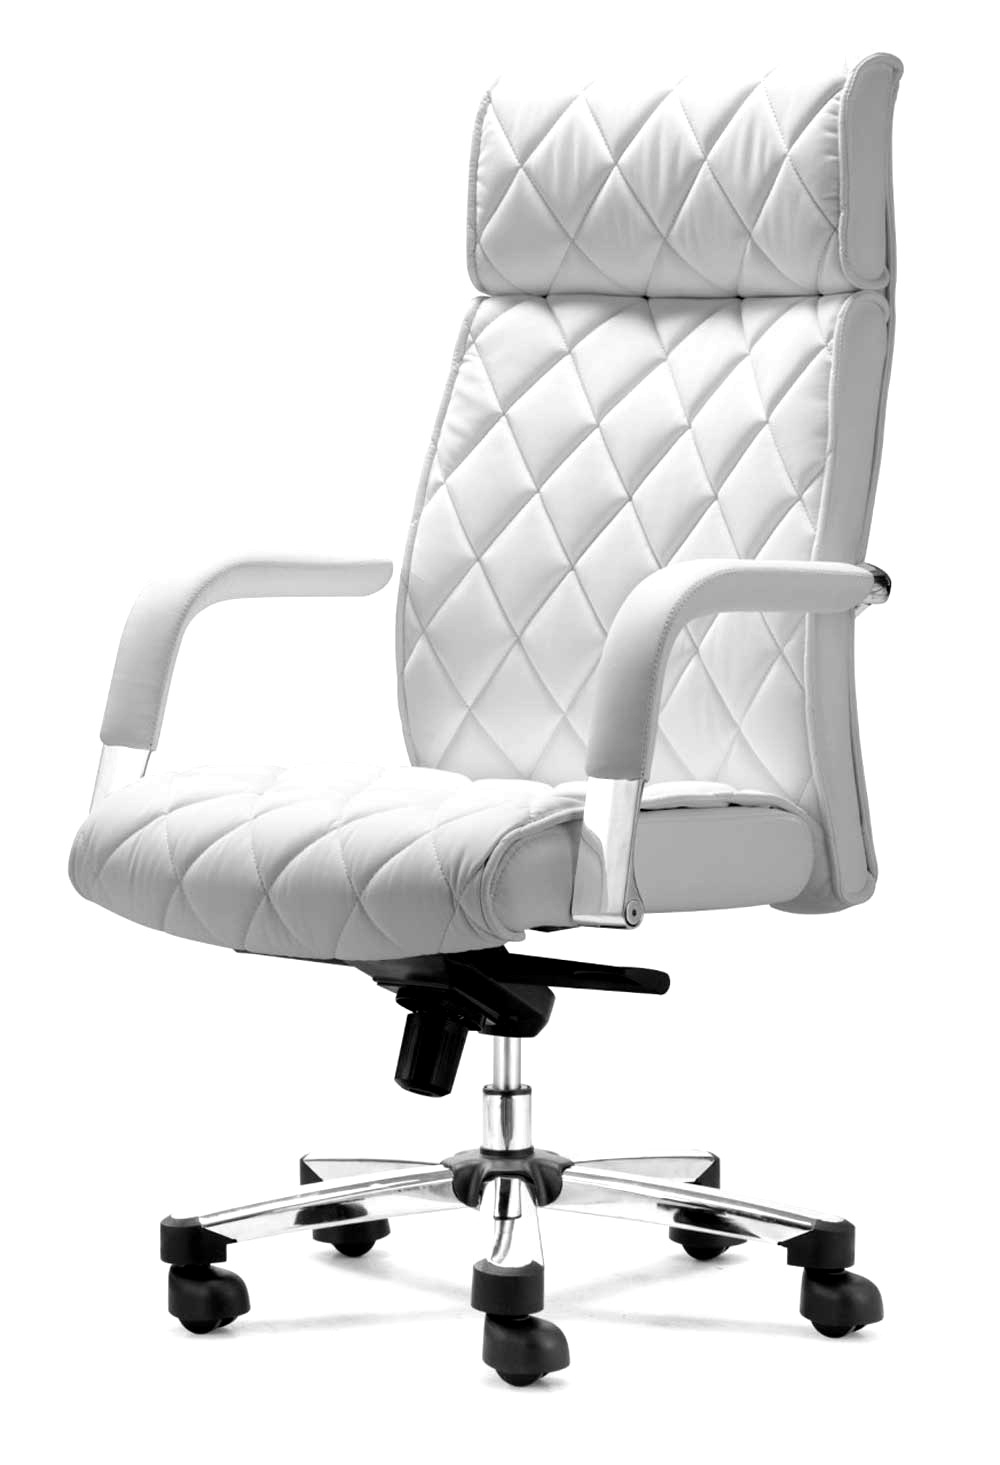 Madison Executive Office Chairs Regarding Most Recent Modern White Office Chair Gallery – Best Daily Home Design Ideas (View 11 of 20)